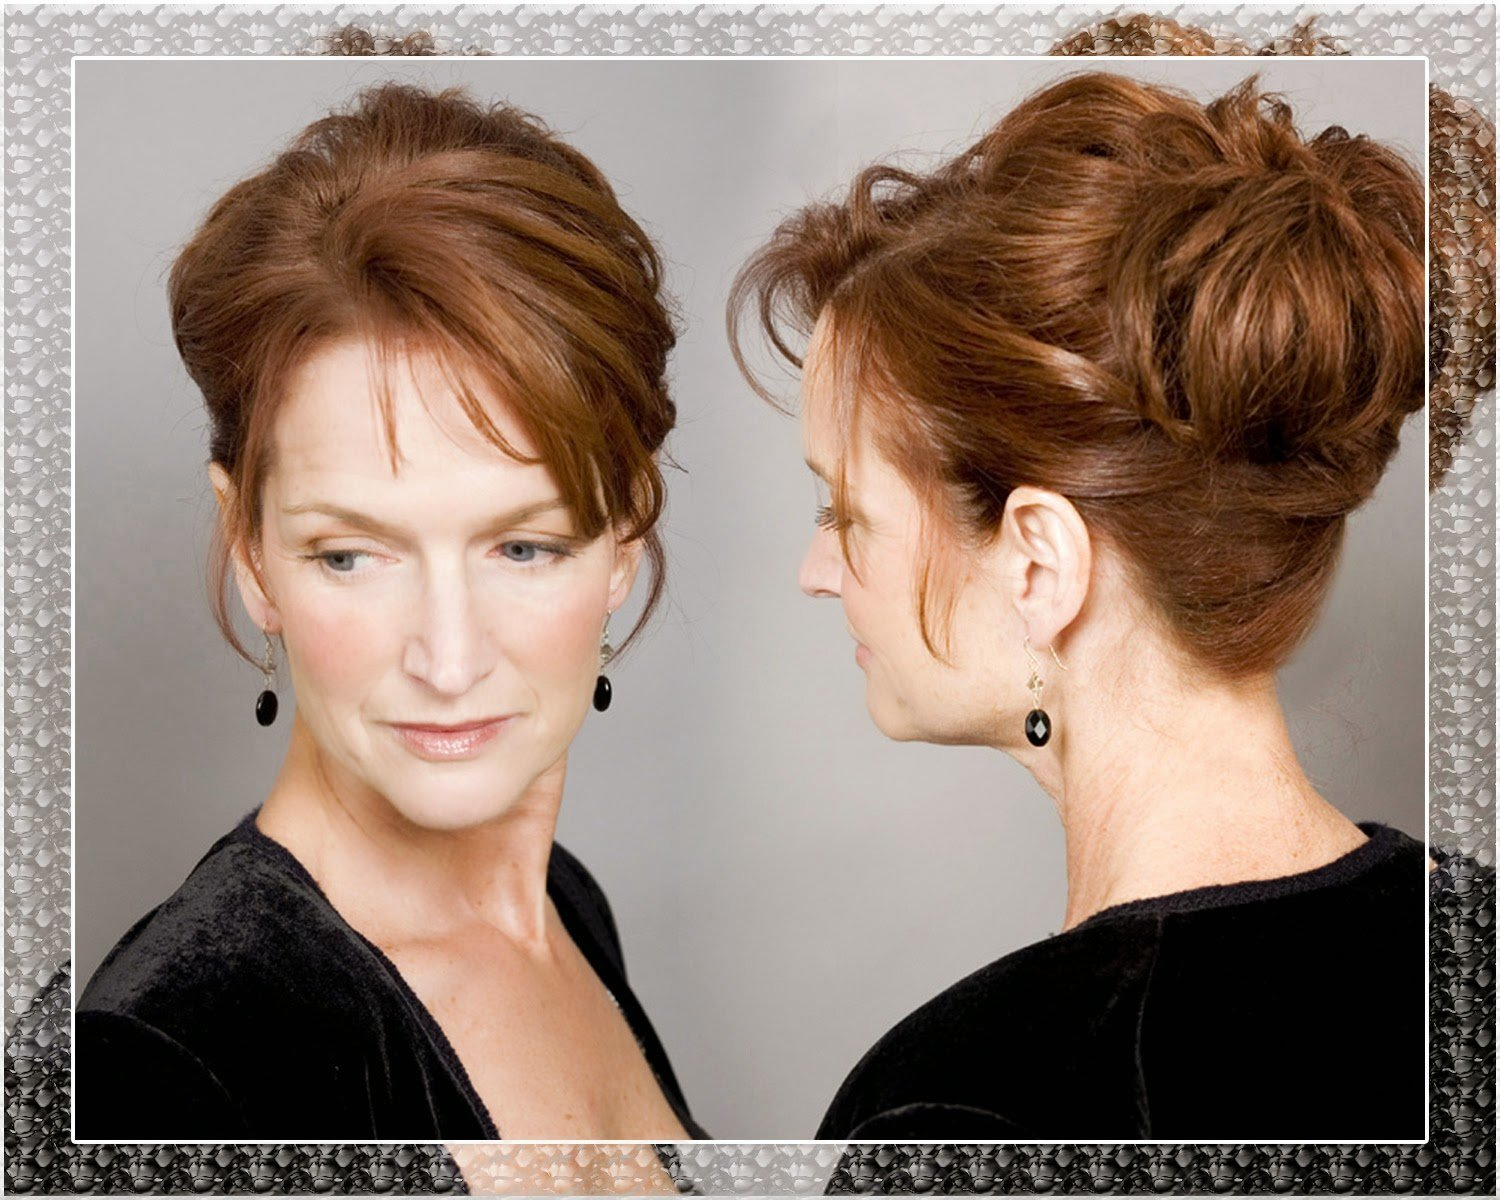 The Best Beautiful Hair Wedding Hairstyles For Short Hair For Pictures